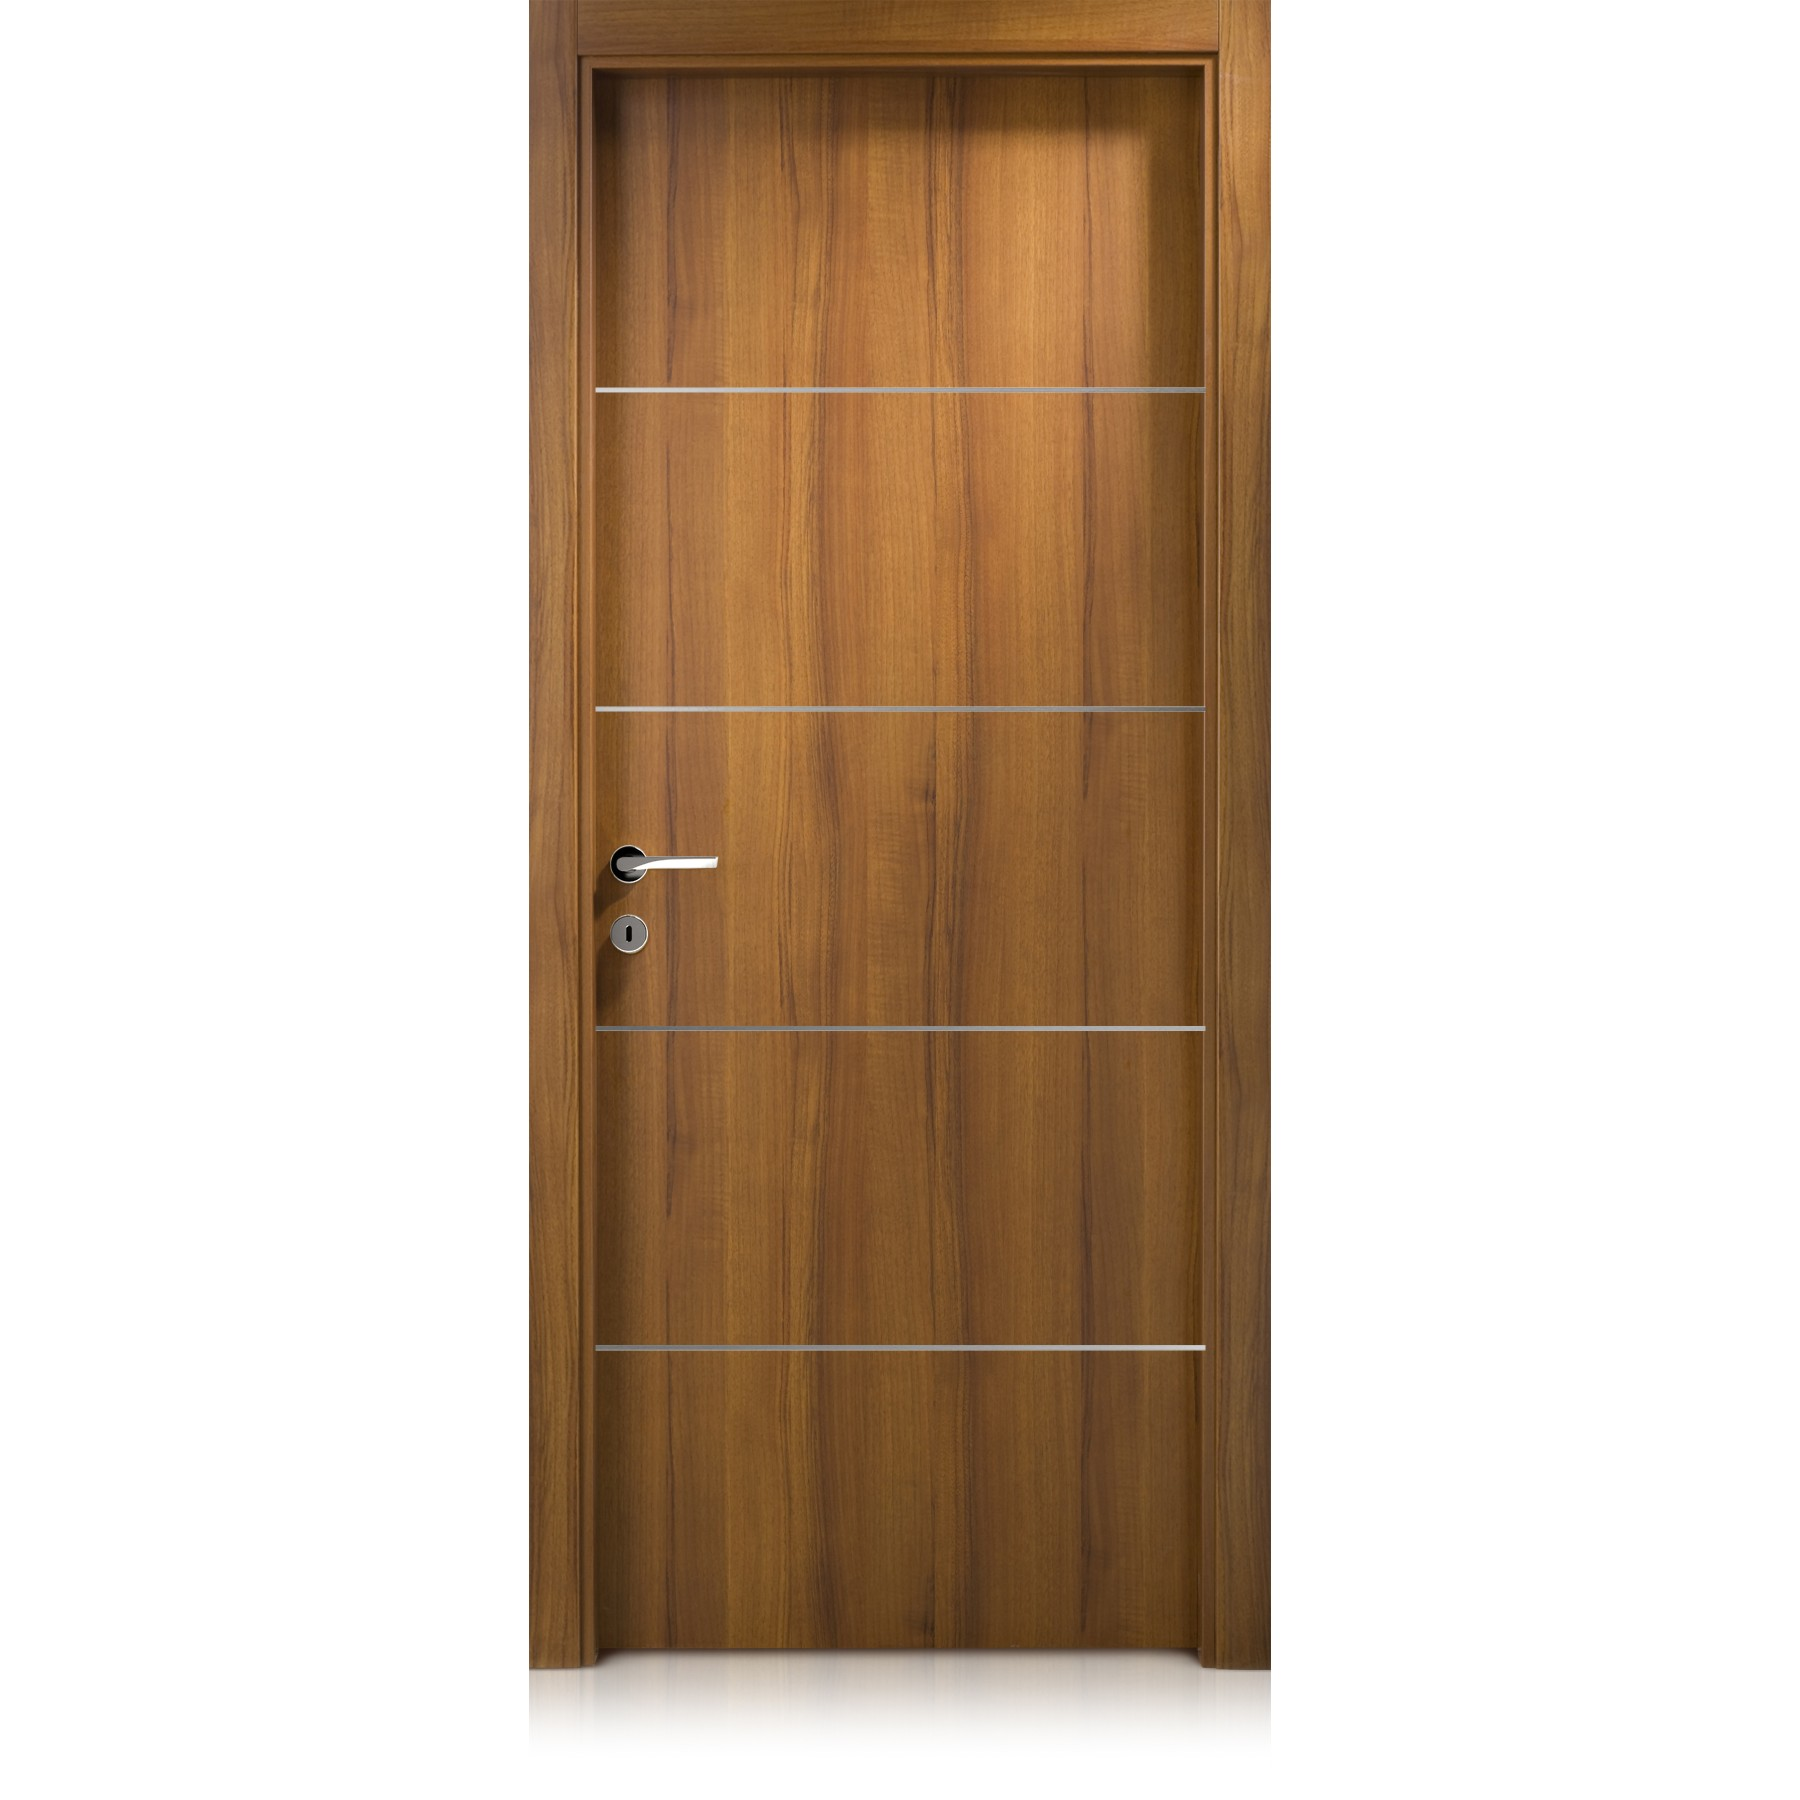 Liss / 4 noce door